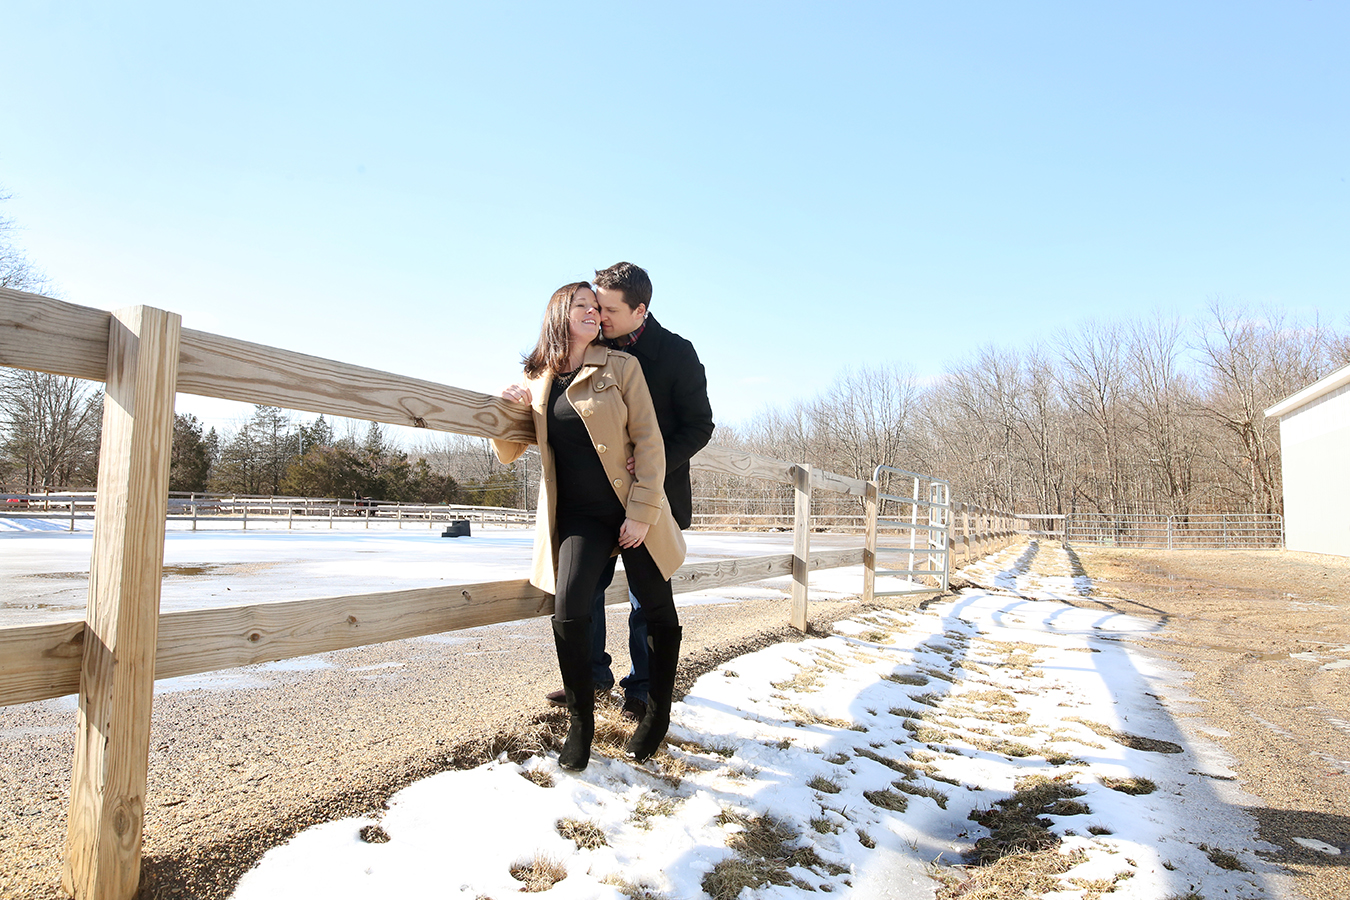 Horse Stable Engagement Shoot